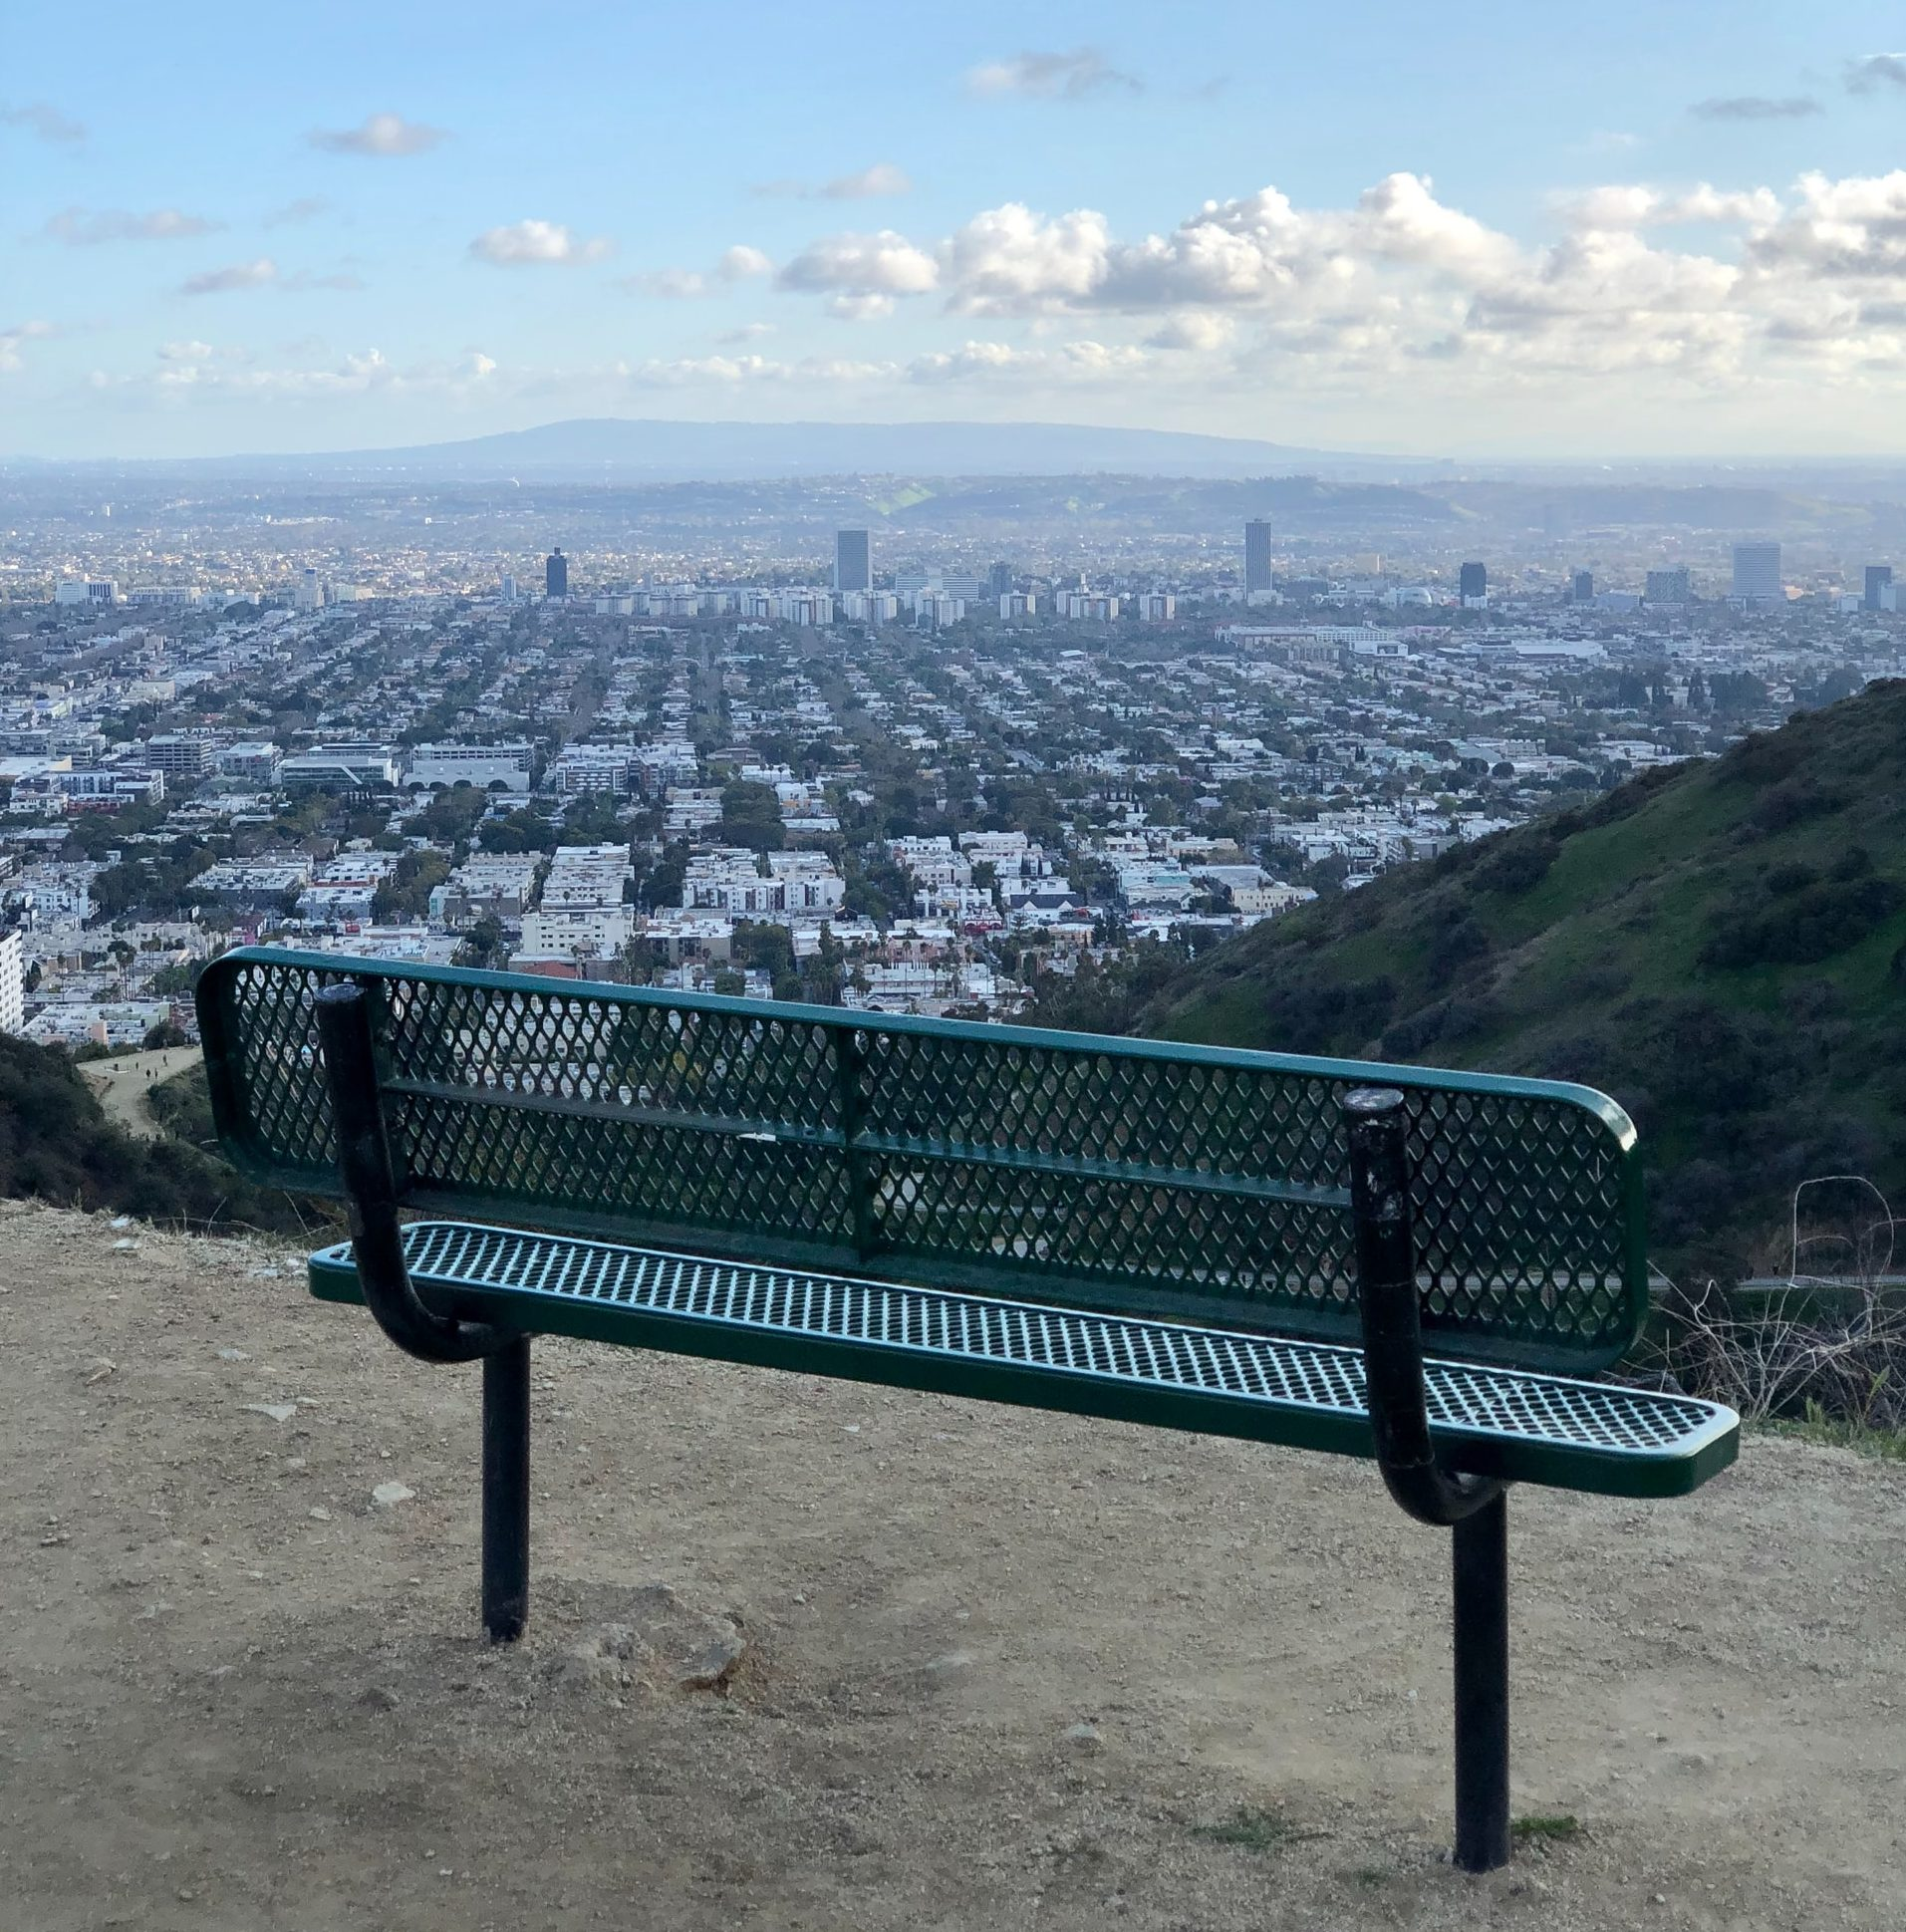 Bench in Runyon Canyon Park with view of LA